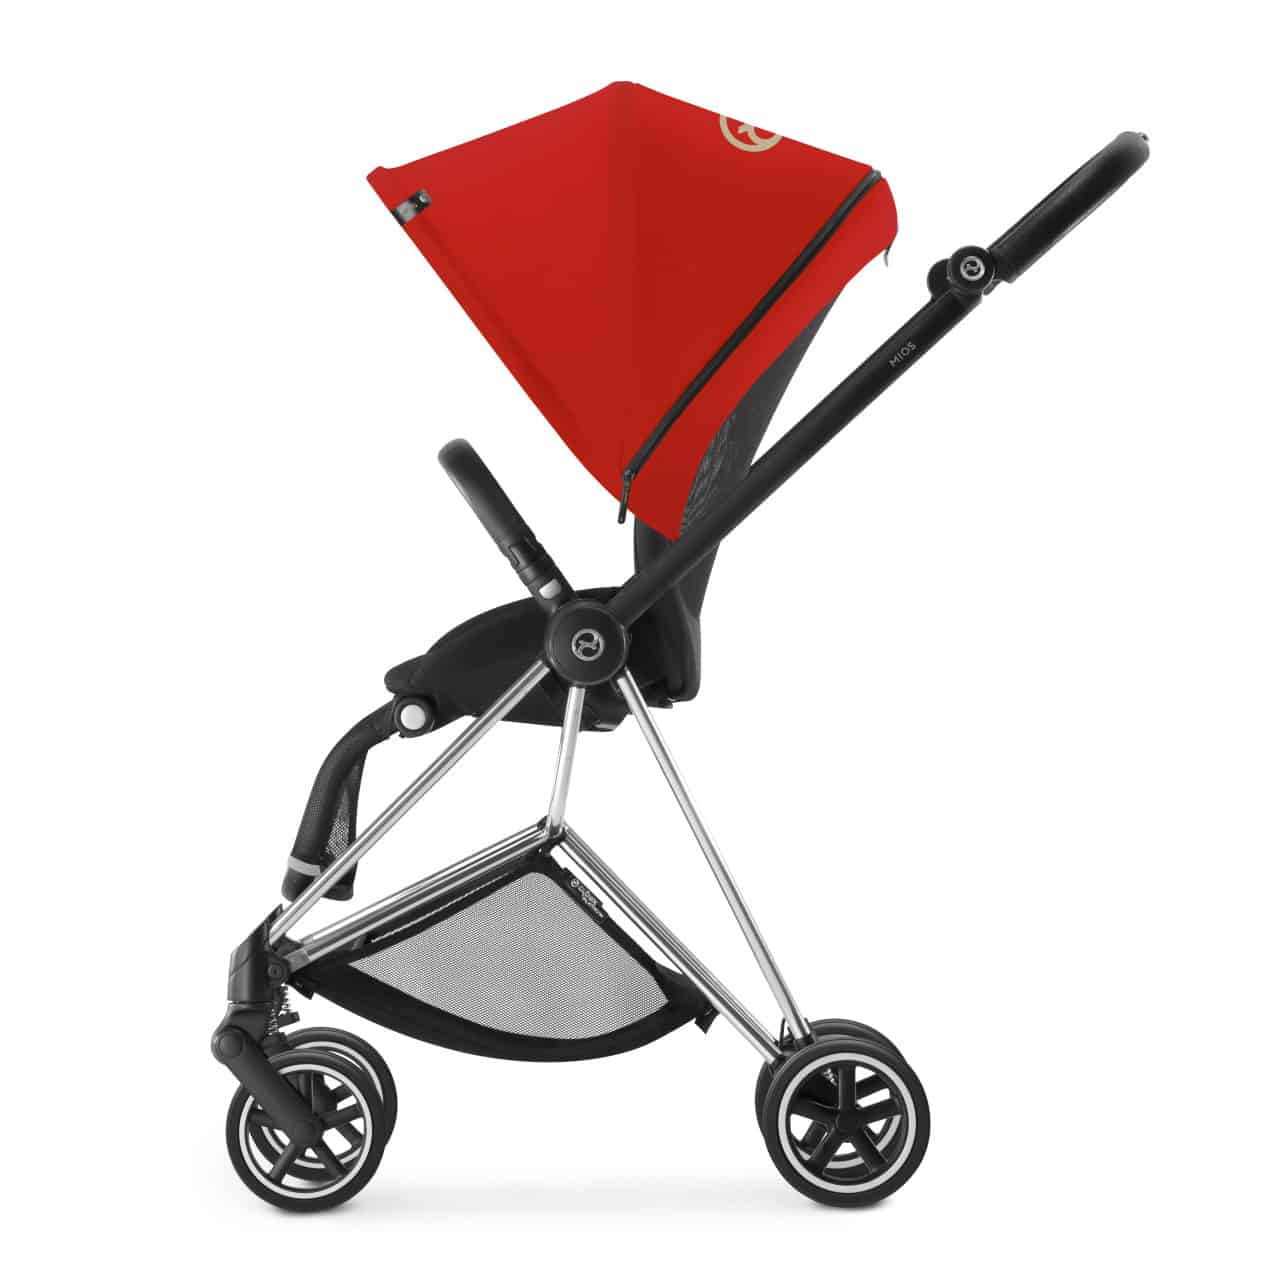 Stroller Brand Review Cybex Baby Bargains